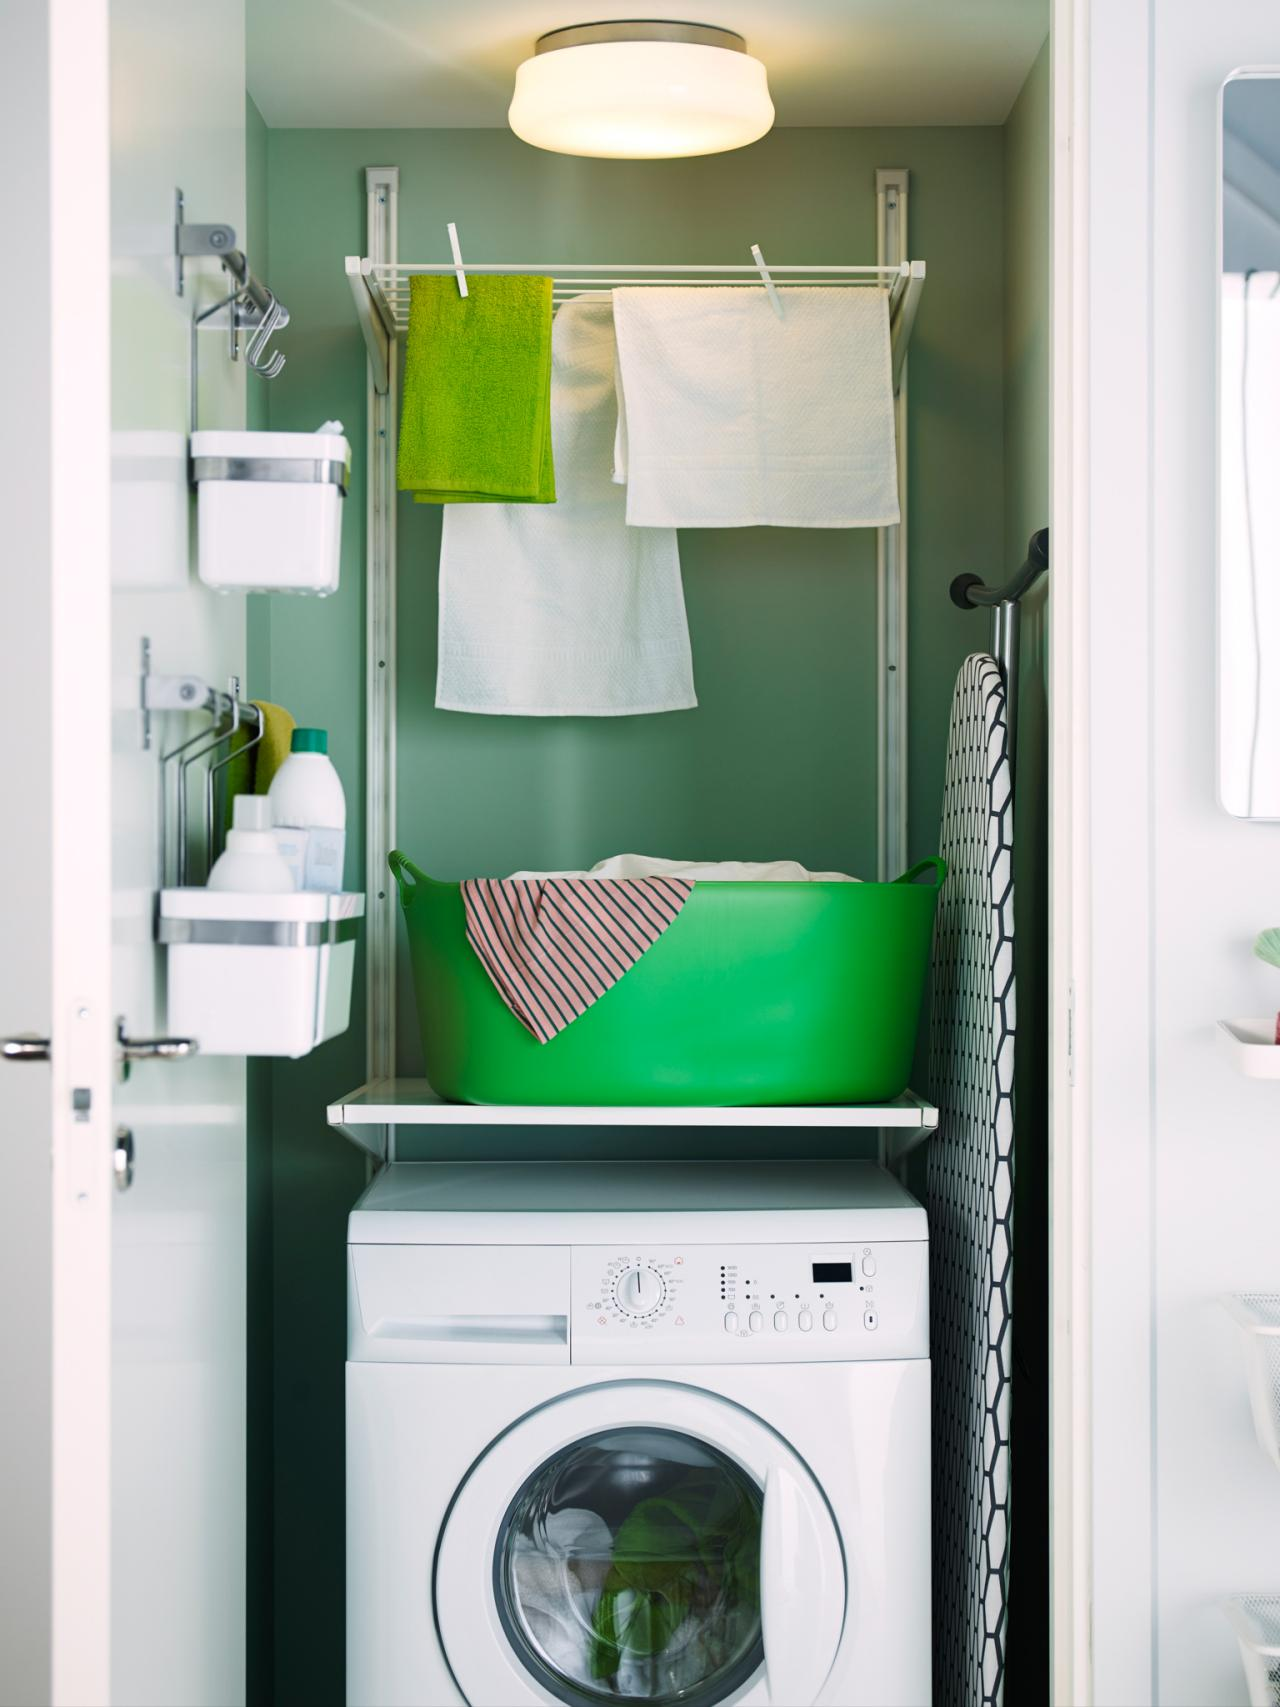 Small laundry room storage ideas pictures options tips Small room storage ideas ikea